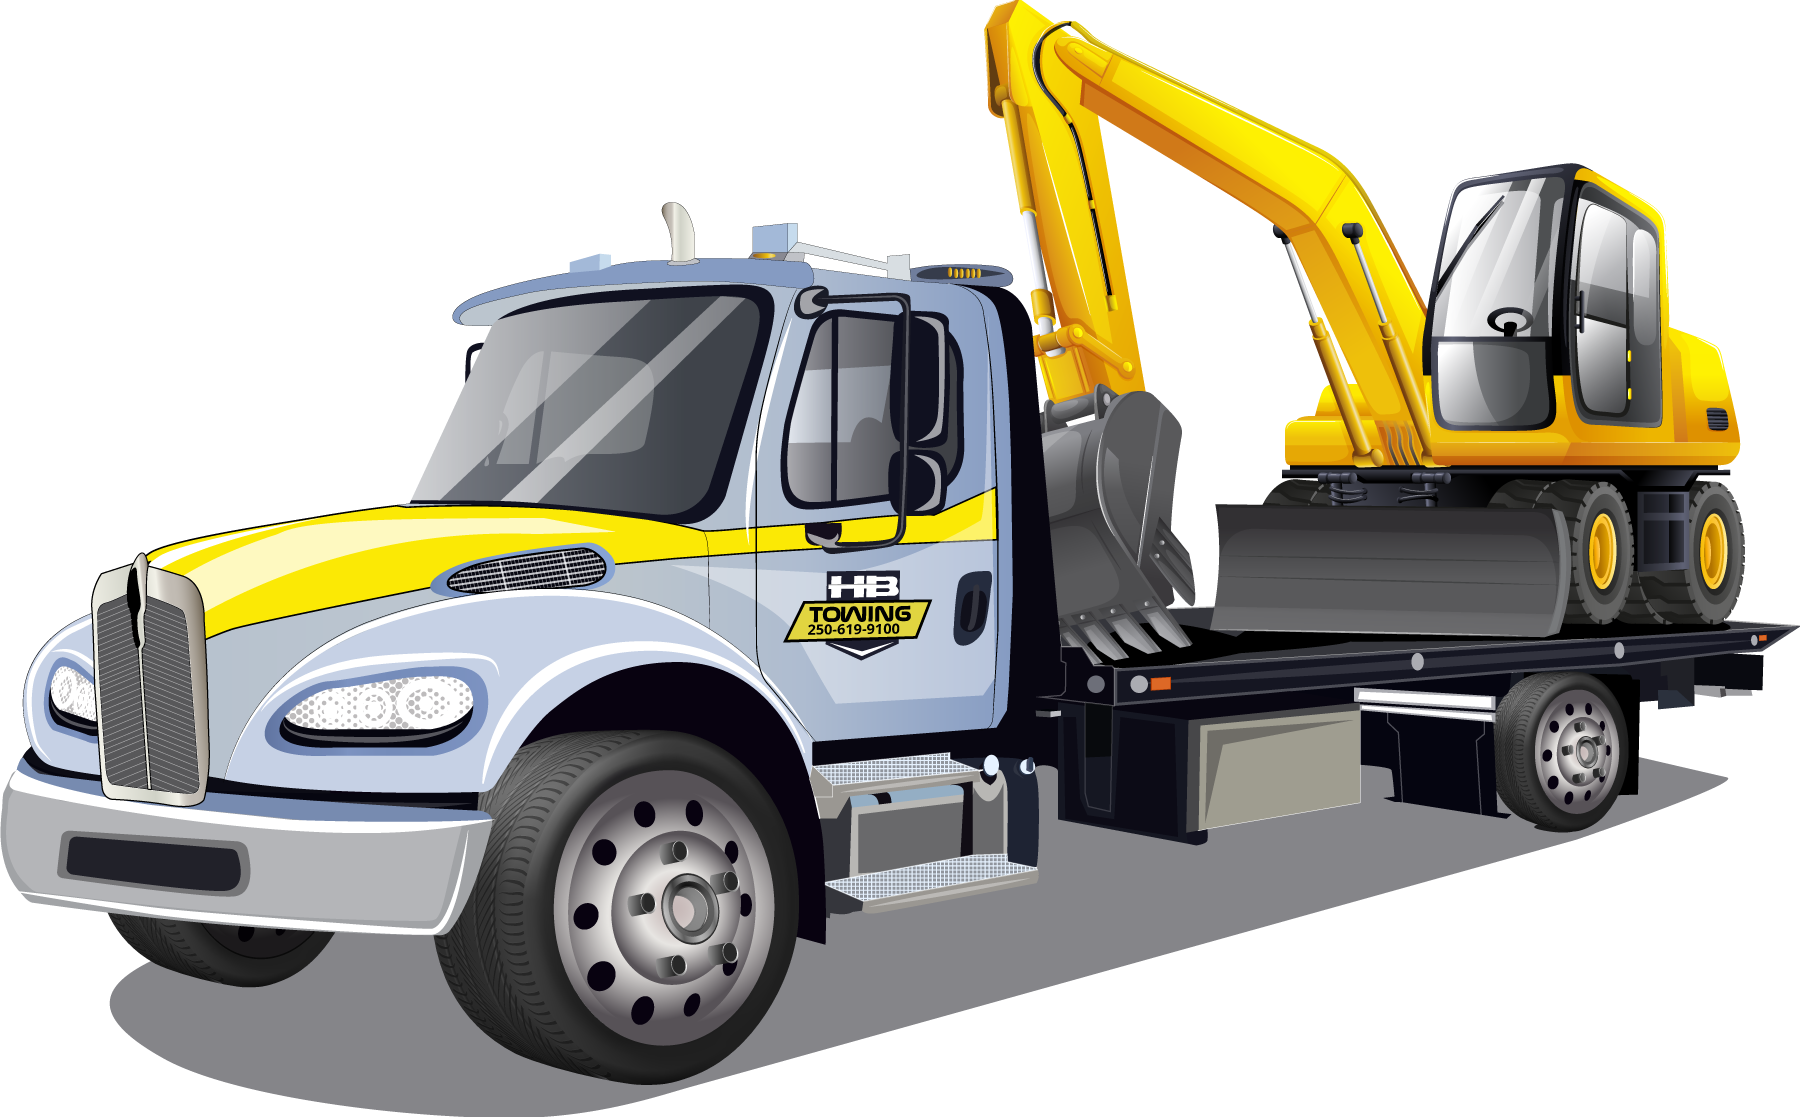 HB Towing Tow Truck illustration of a truck hauling a excavator